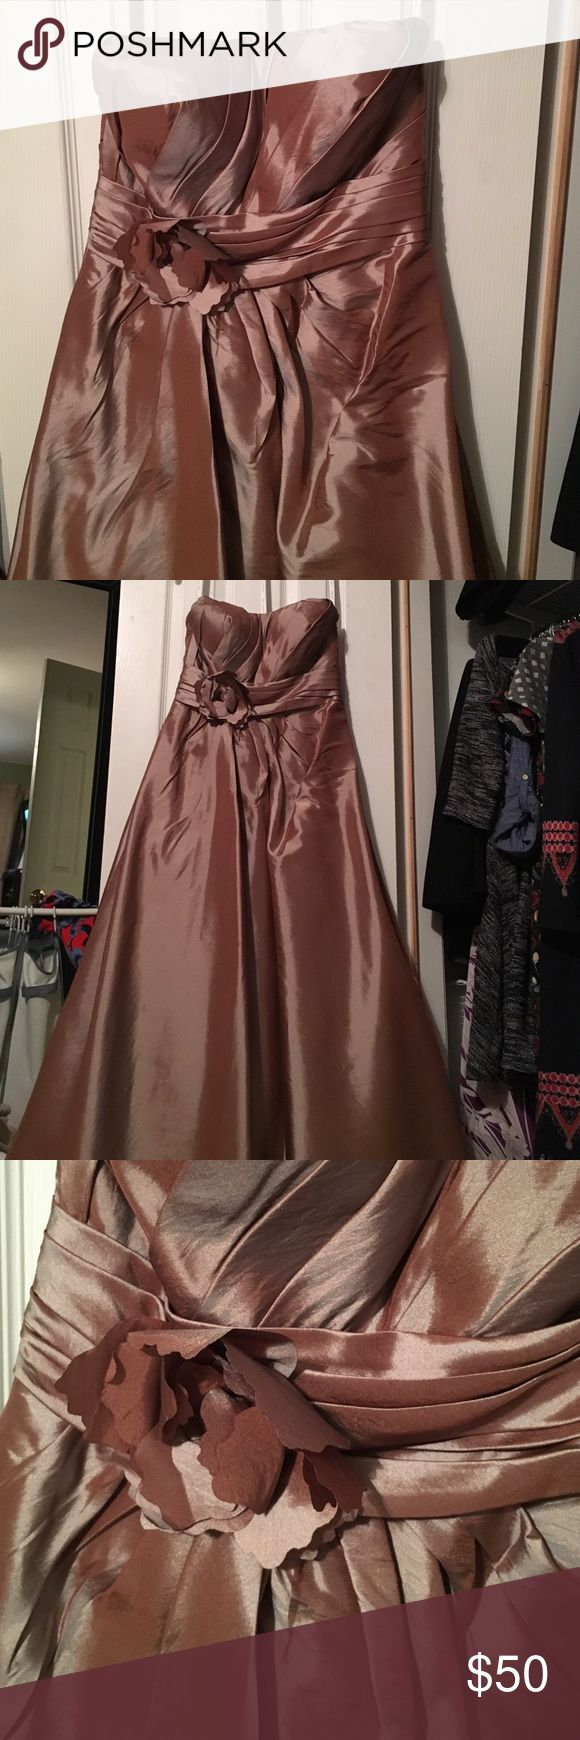 """Bill Levkoff bridesmaid /prom dress Beautiful bridesmaid/prom dress worn once. Metallic tan champagne color. Size """"12"""" but bridal sizing so fits 6/8. Hemmed to fit petite (5'2"""" but worn with 3-4"""" heels). Make an offer! Bill Levkoff Dresses Prom"""